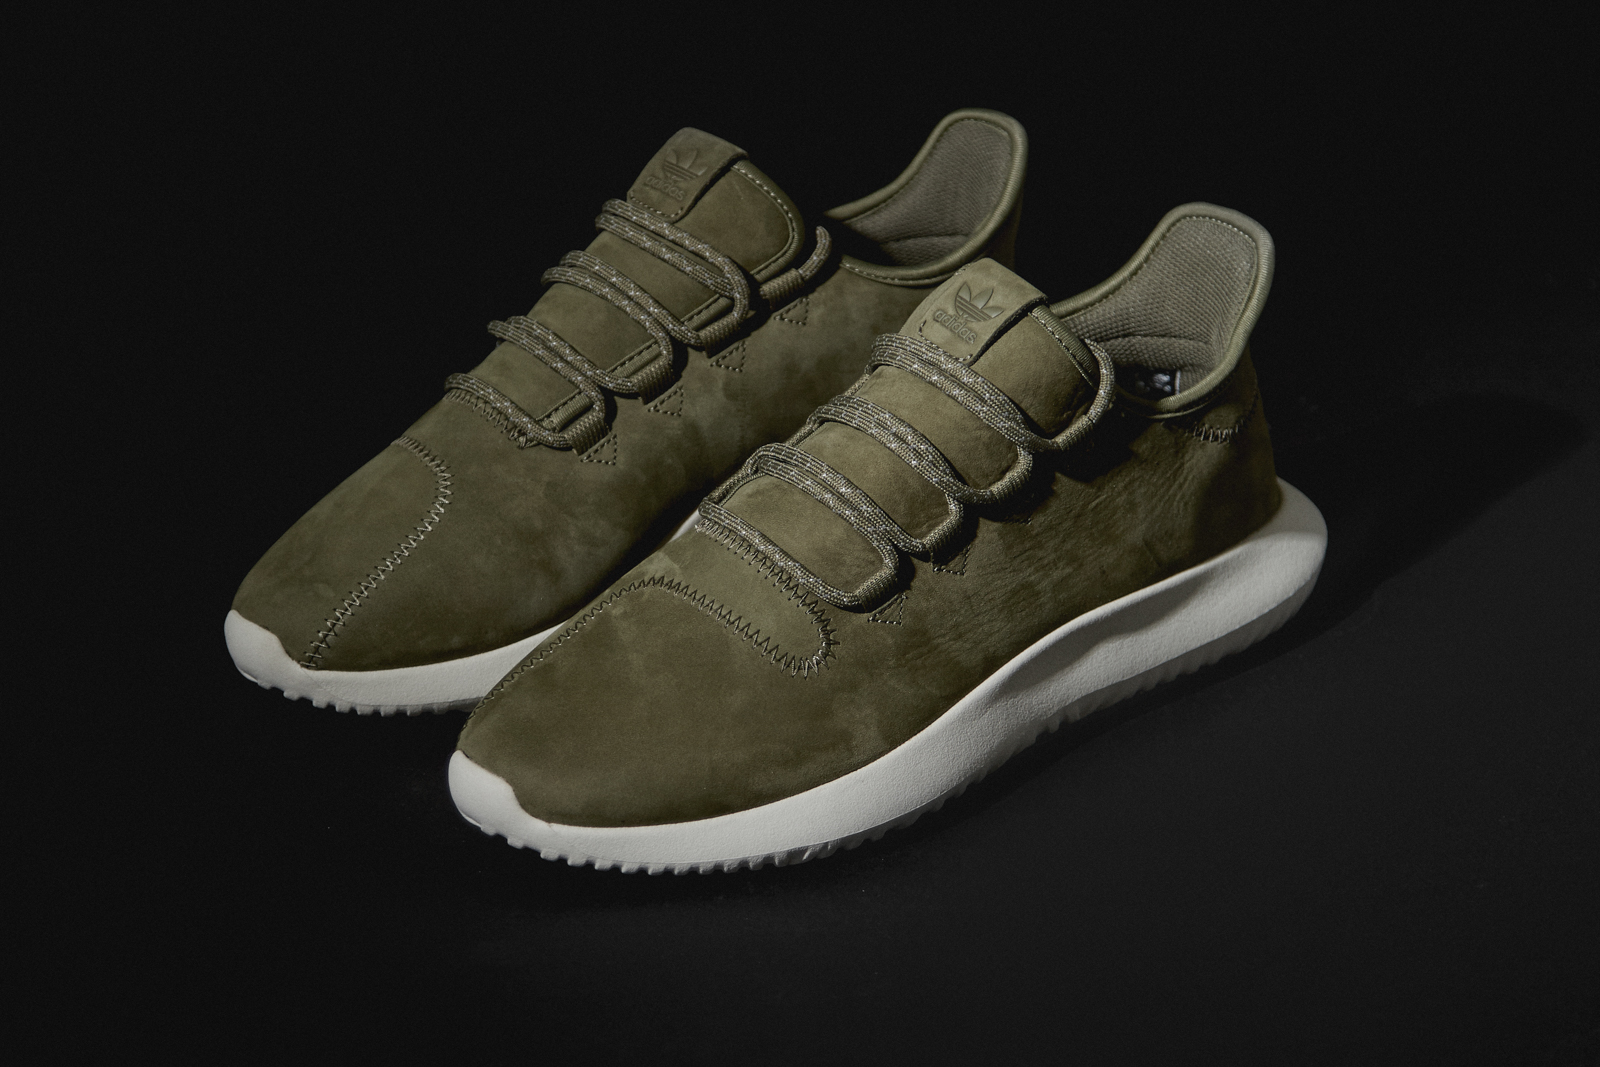 new styles 4f61c fdc49 adidas Originals Tubular Shadow - size? Exclusive - size? blog